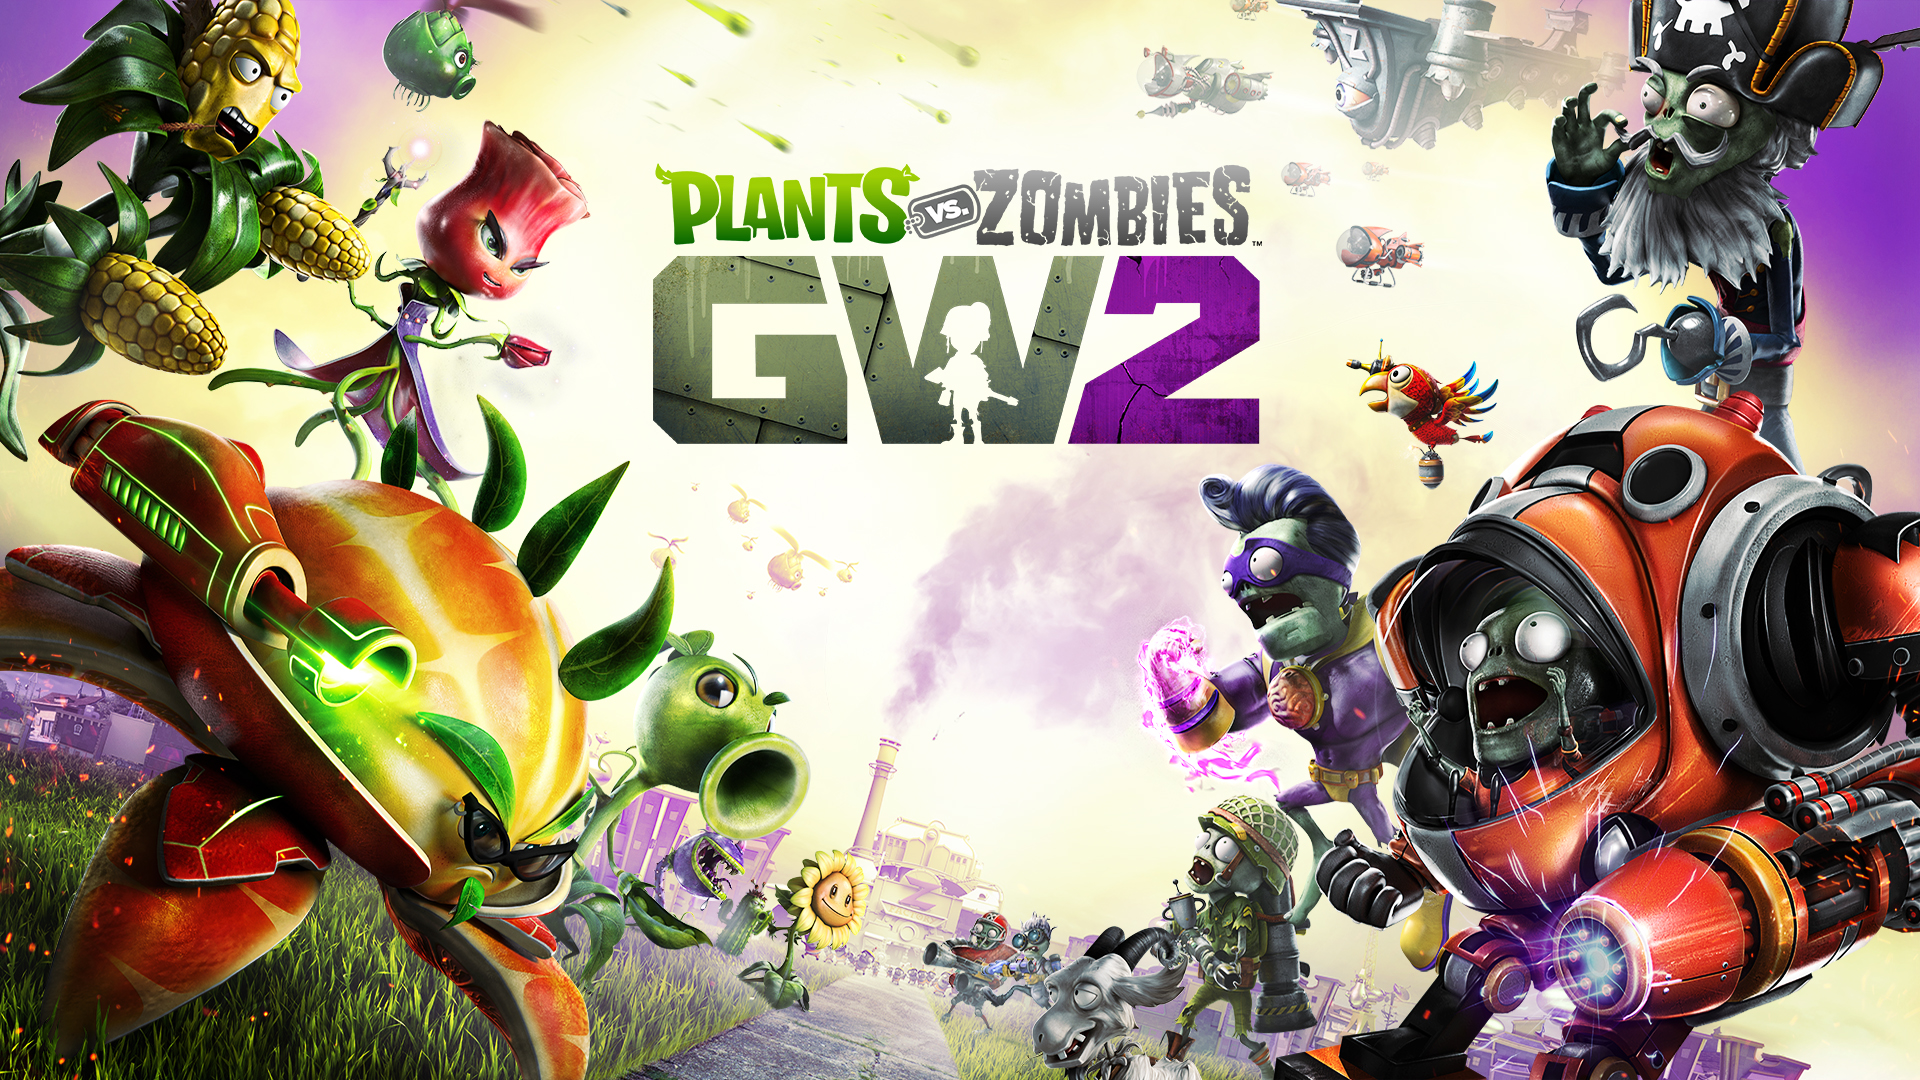 plants vs zombies garden warfare 2 balance update for september 7th 2017 - Plants Vs Zombies Garden Warfare 2 Xbox 360